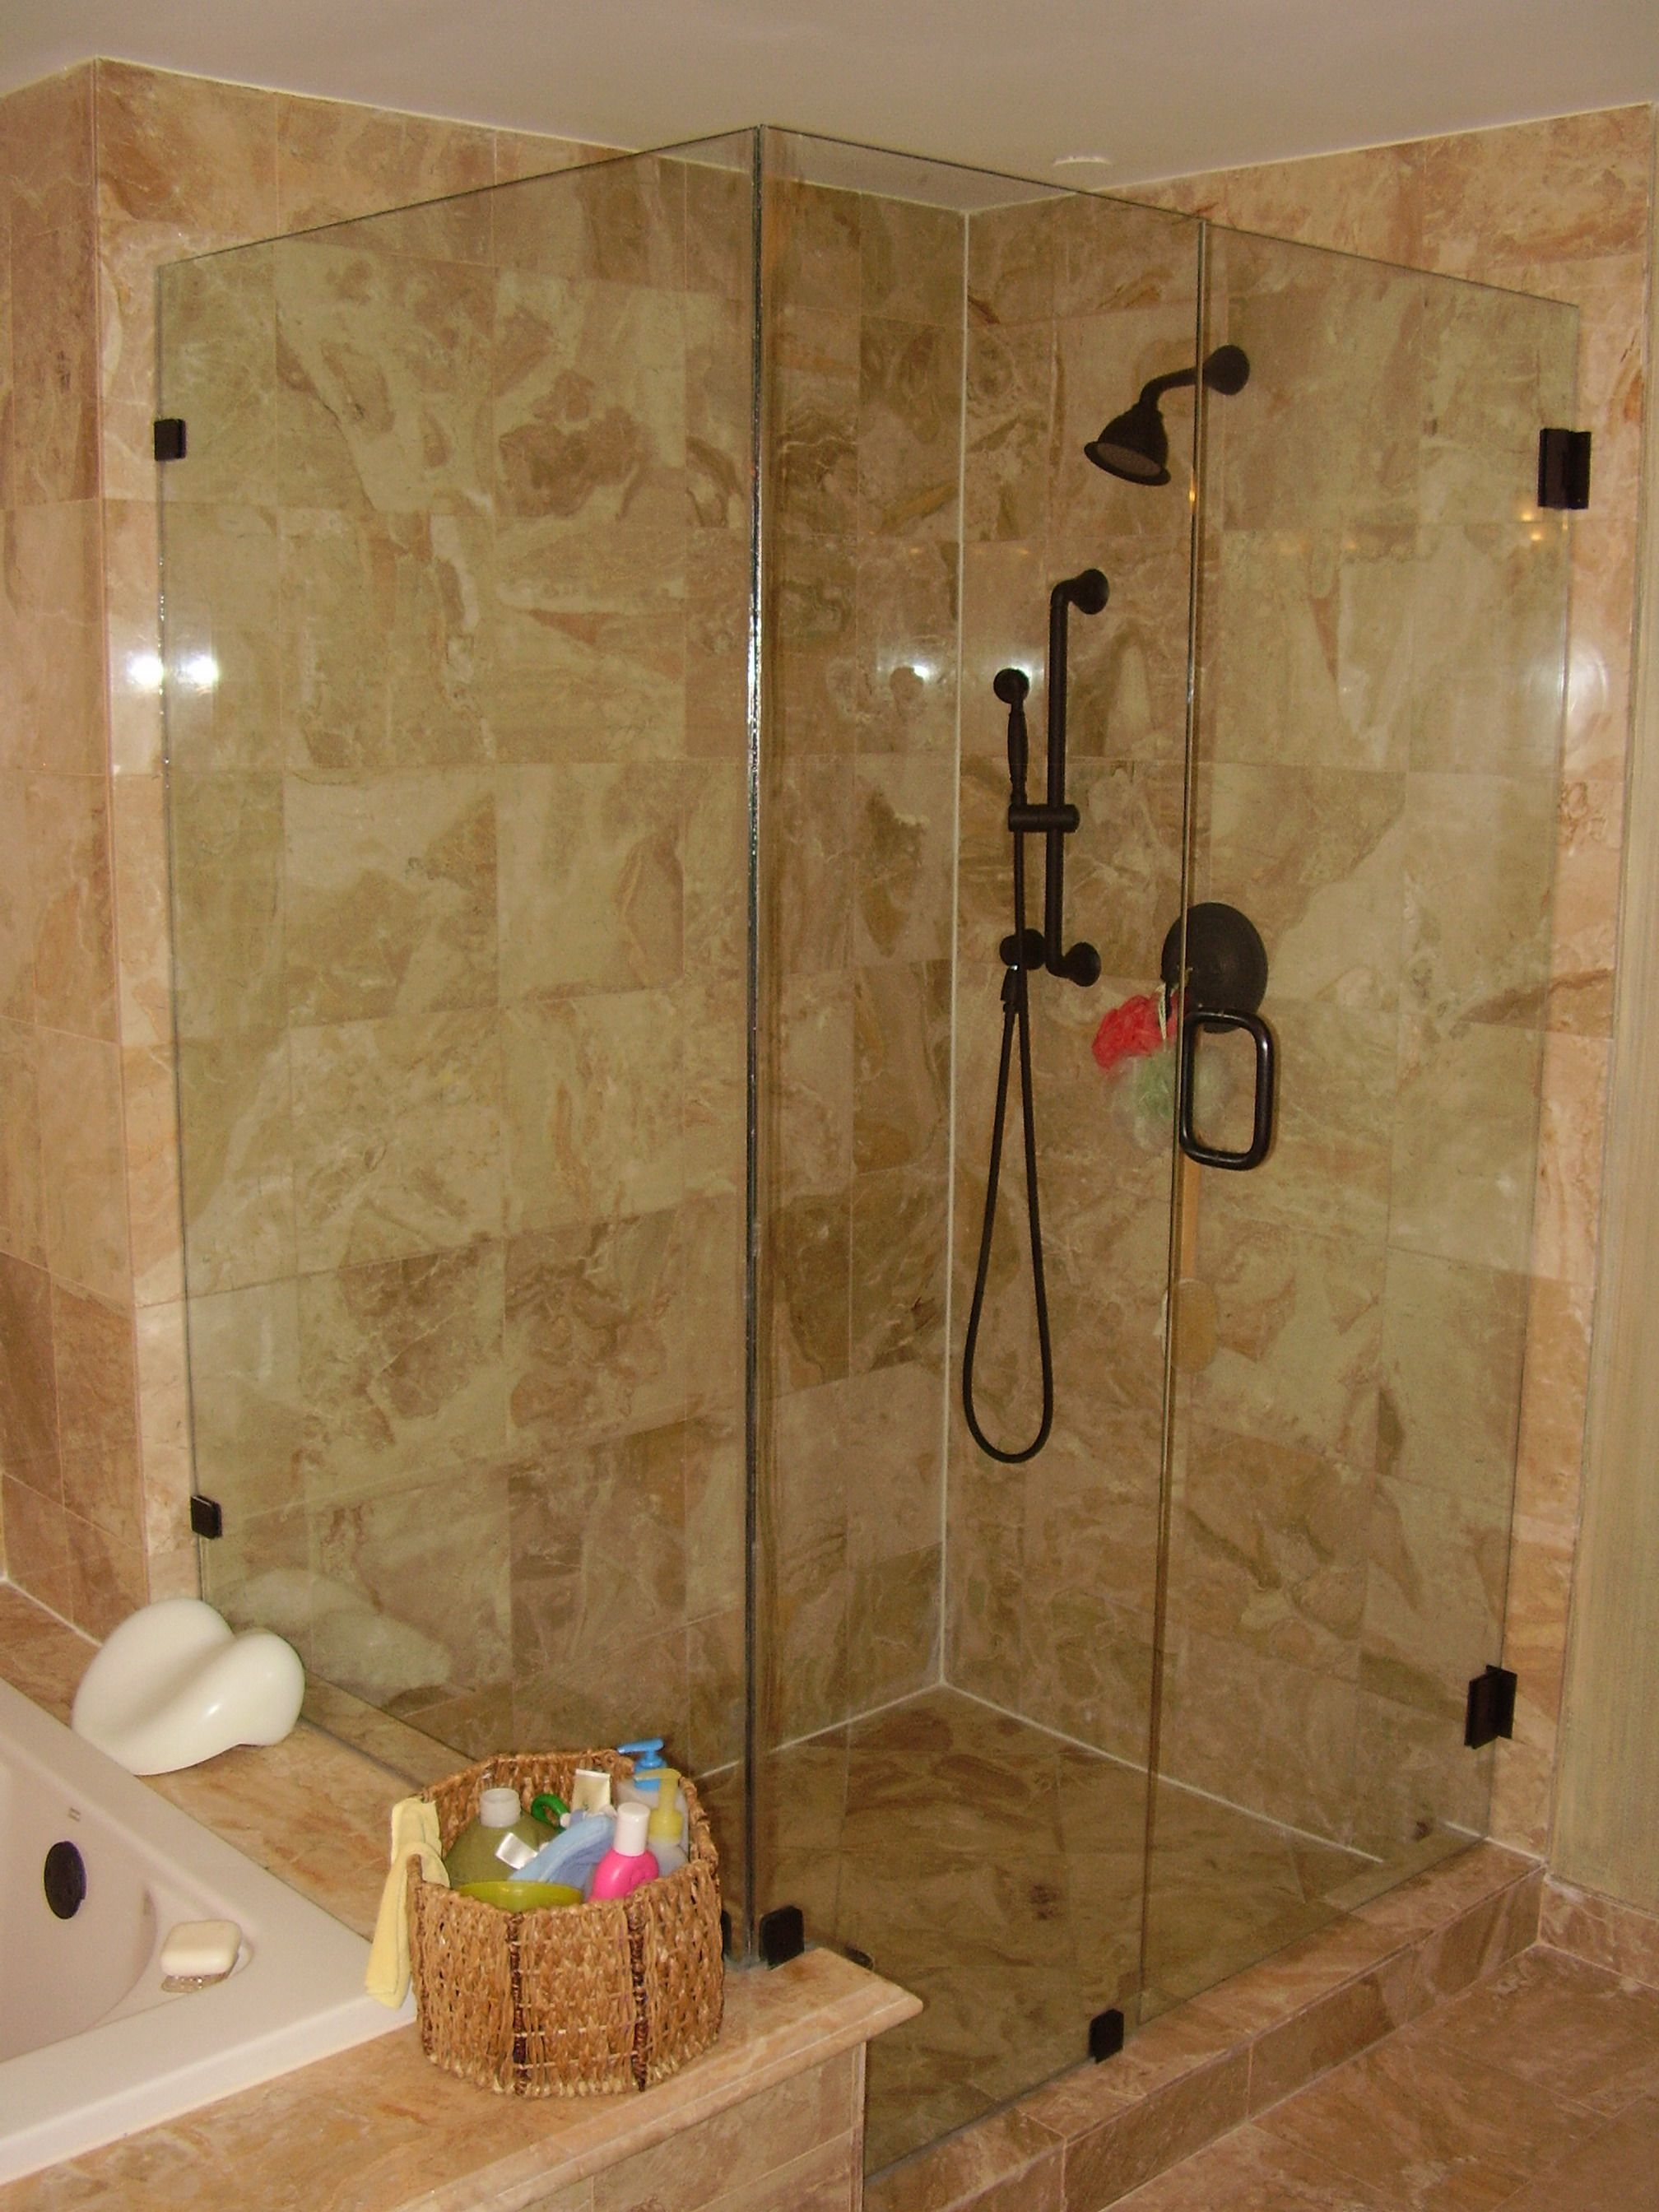 Bathrooms with glass showers